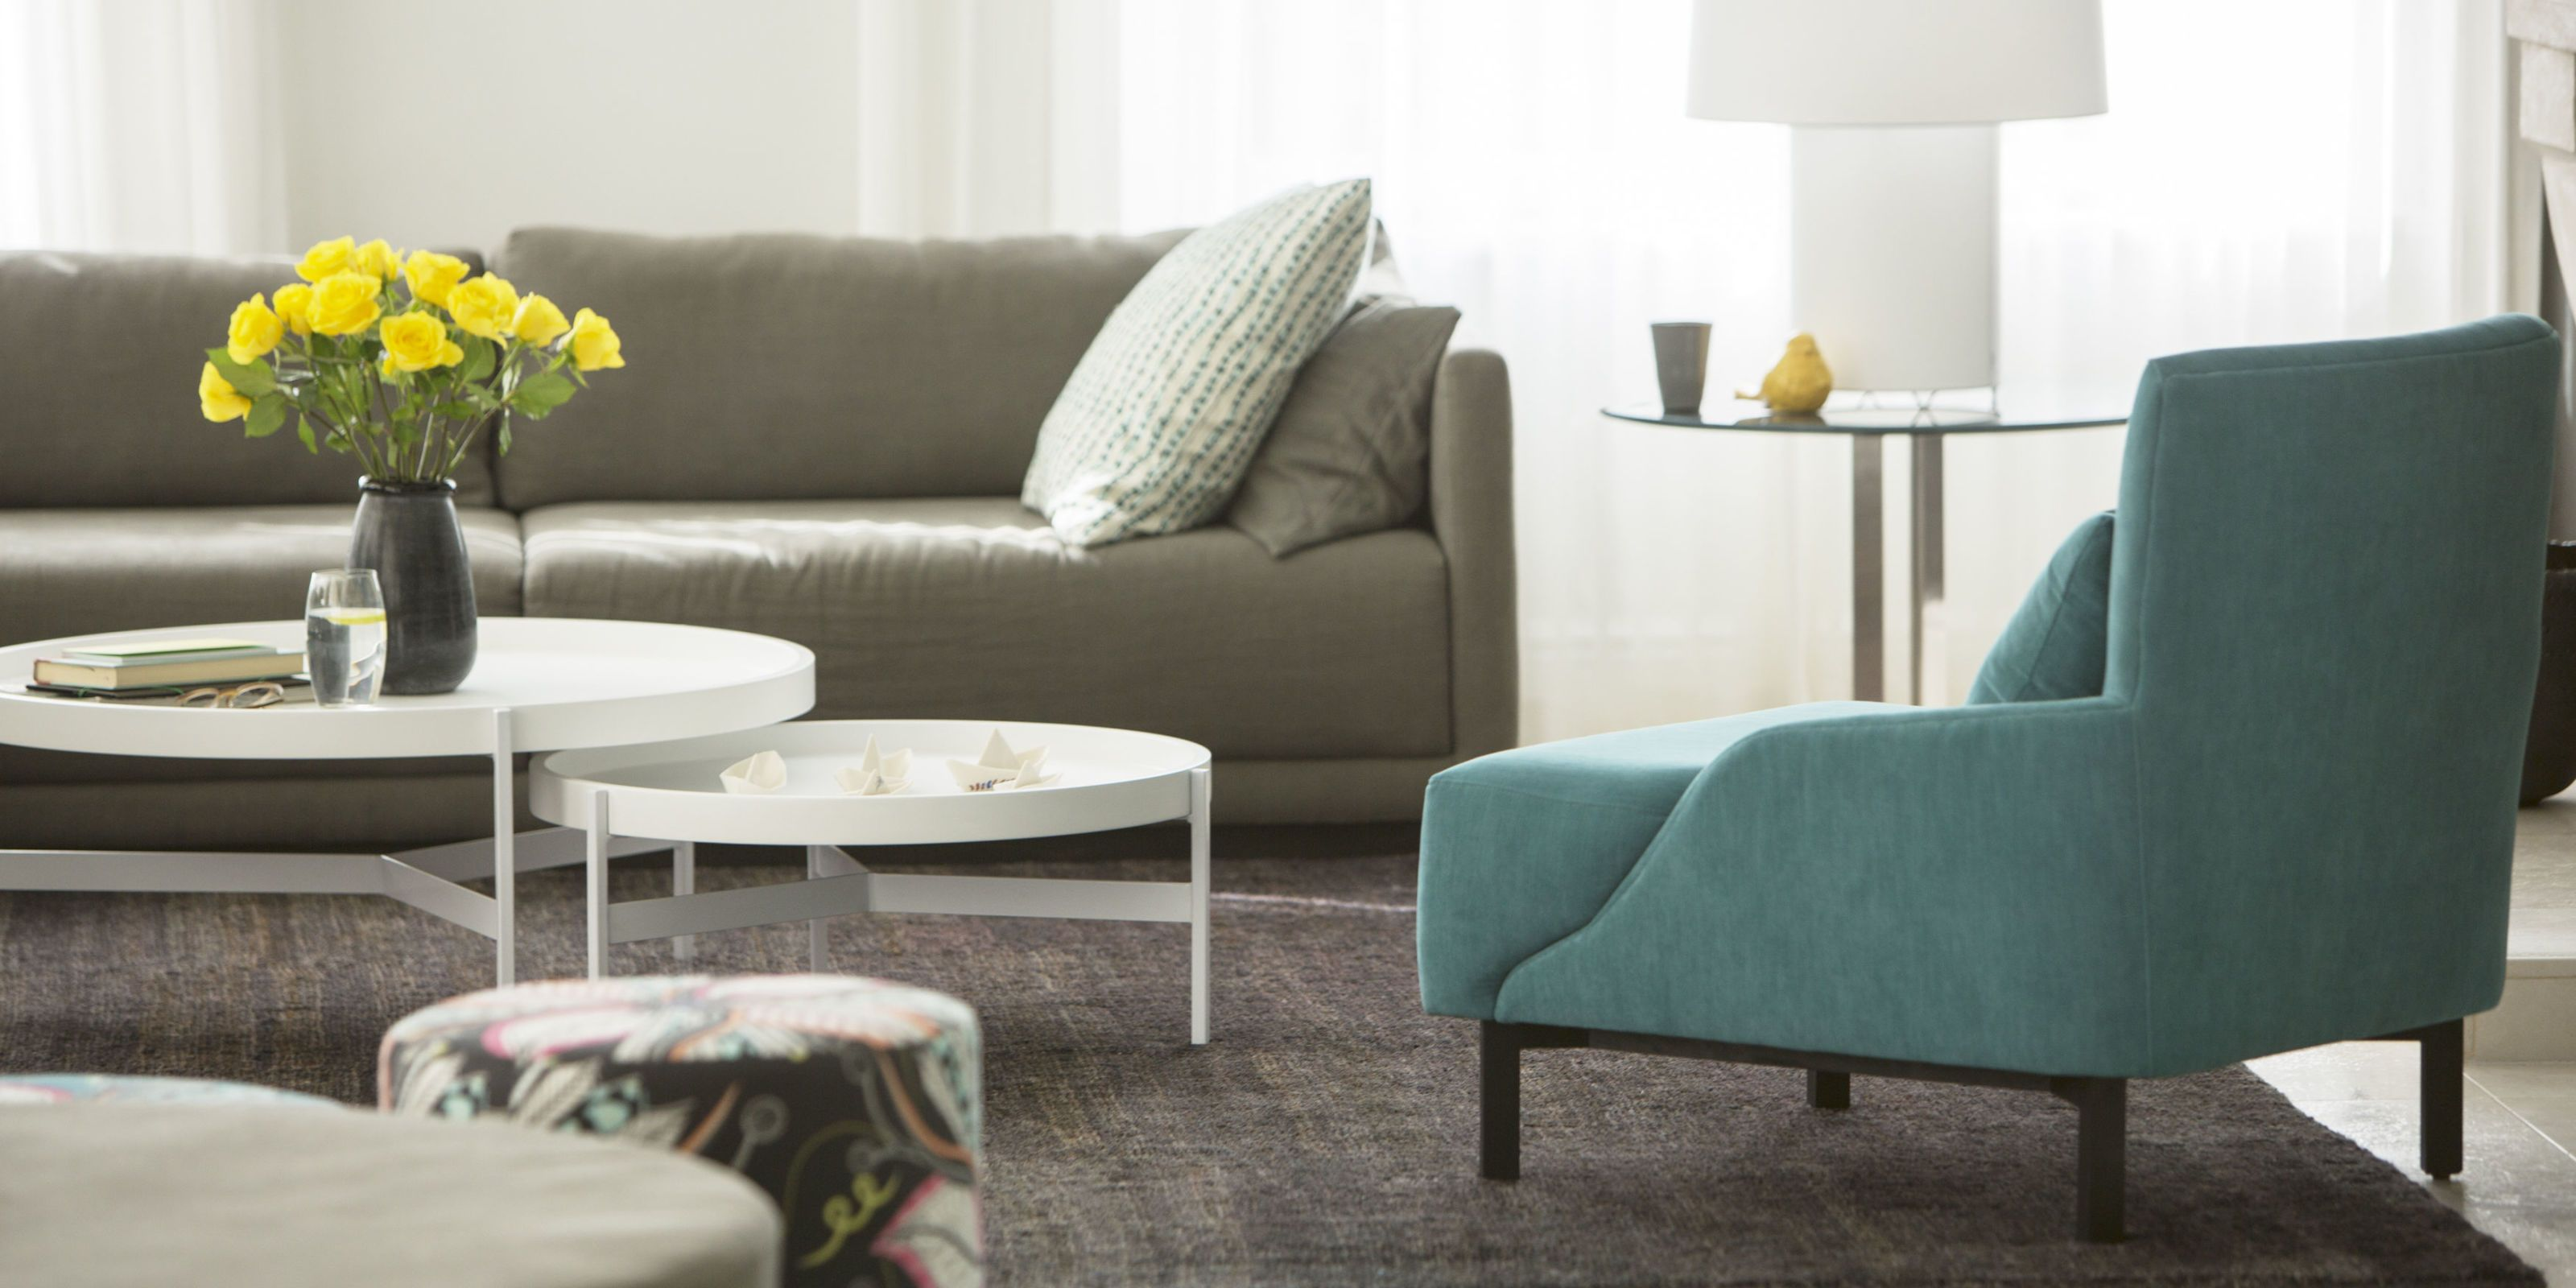 How To Arrange Living Room Furniture Based On The Space And Your Personal  Style.